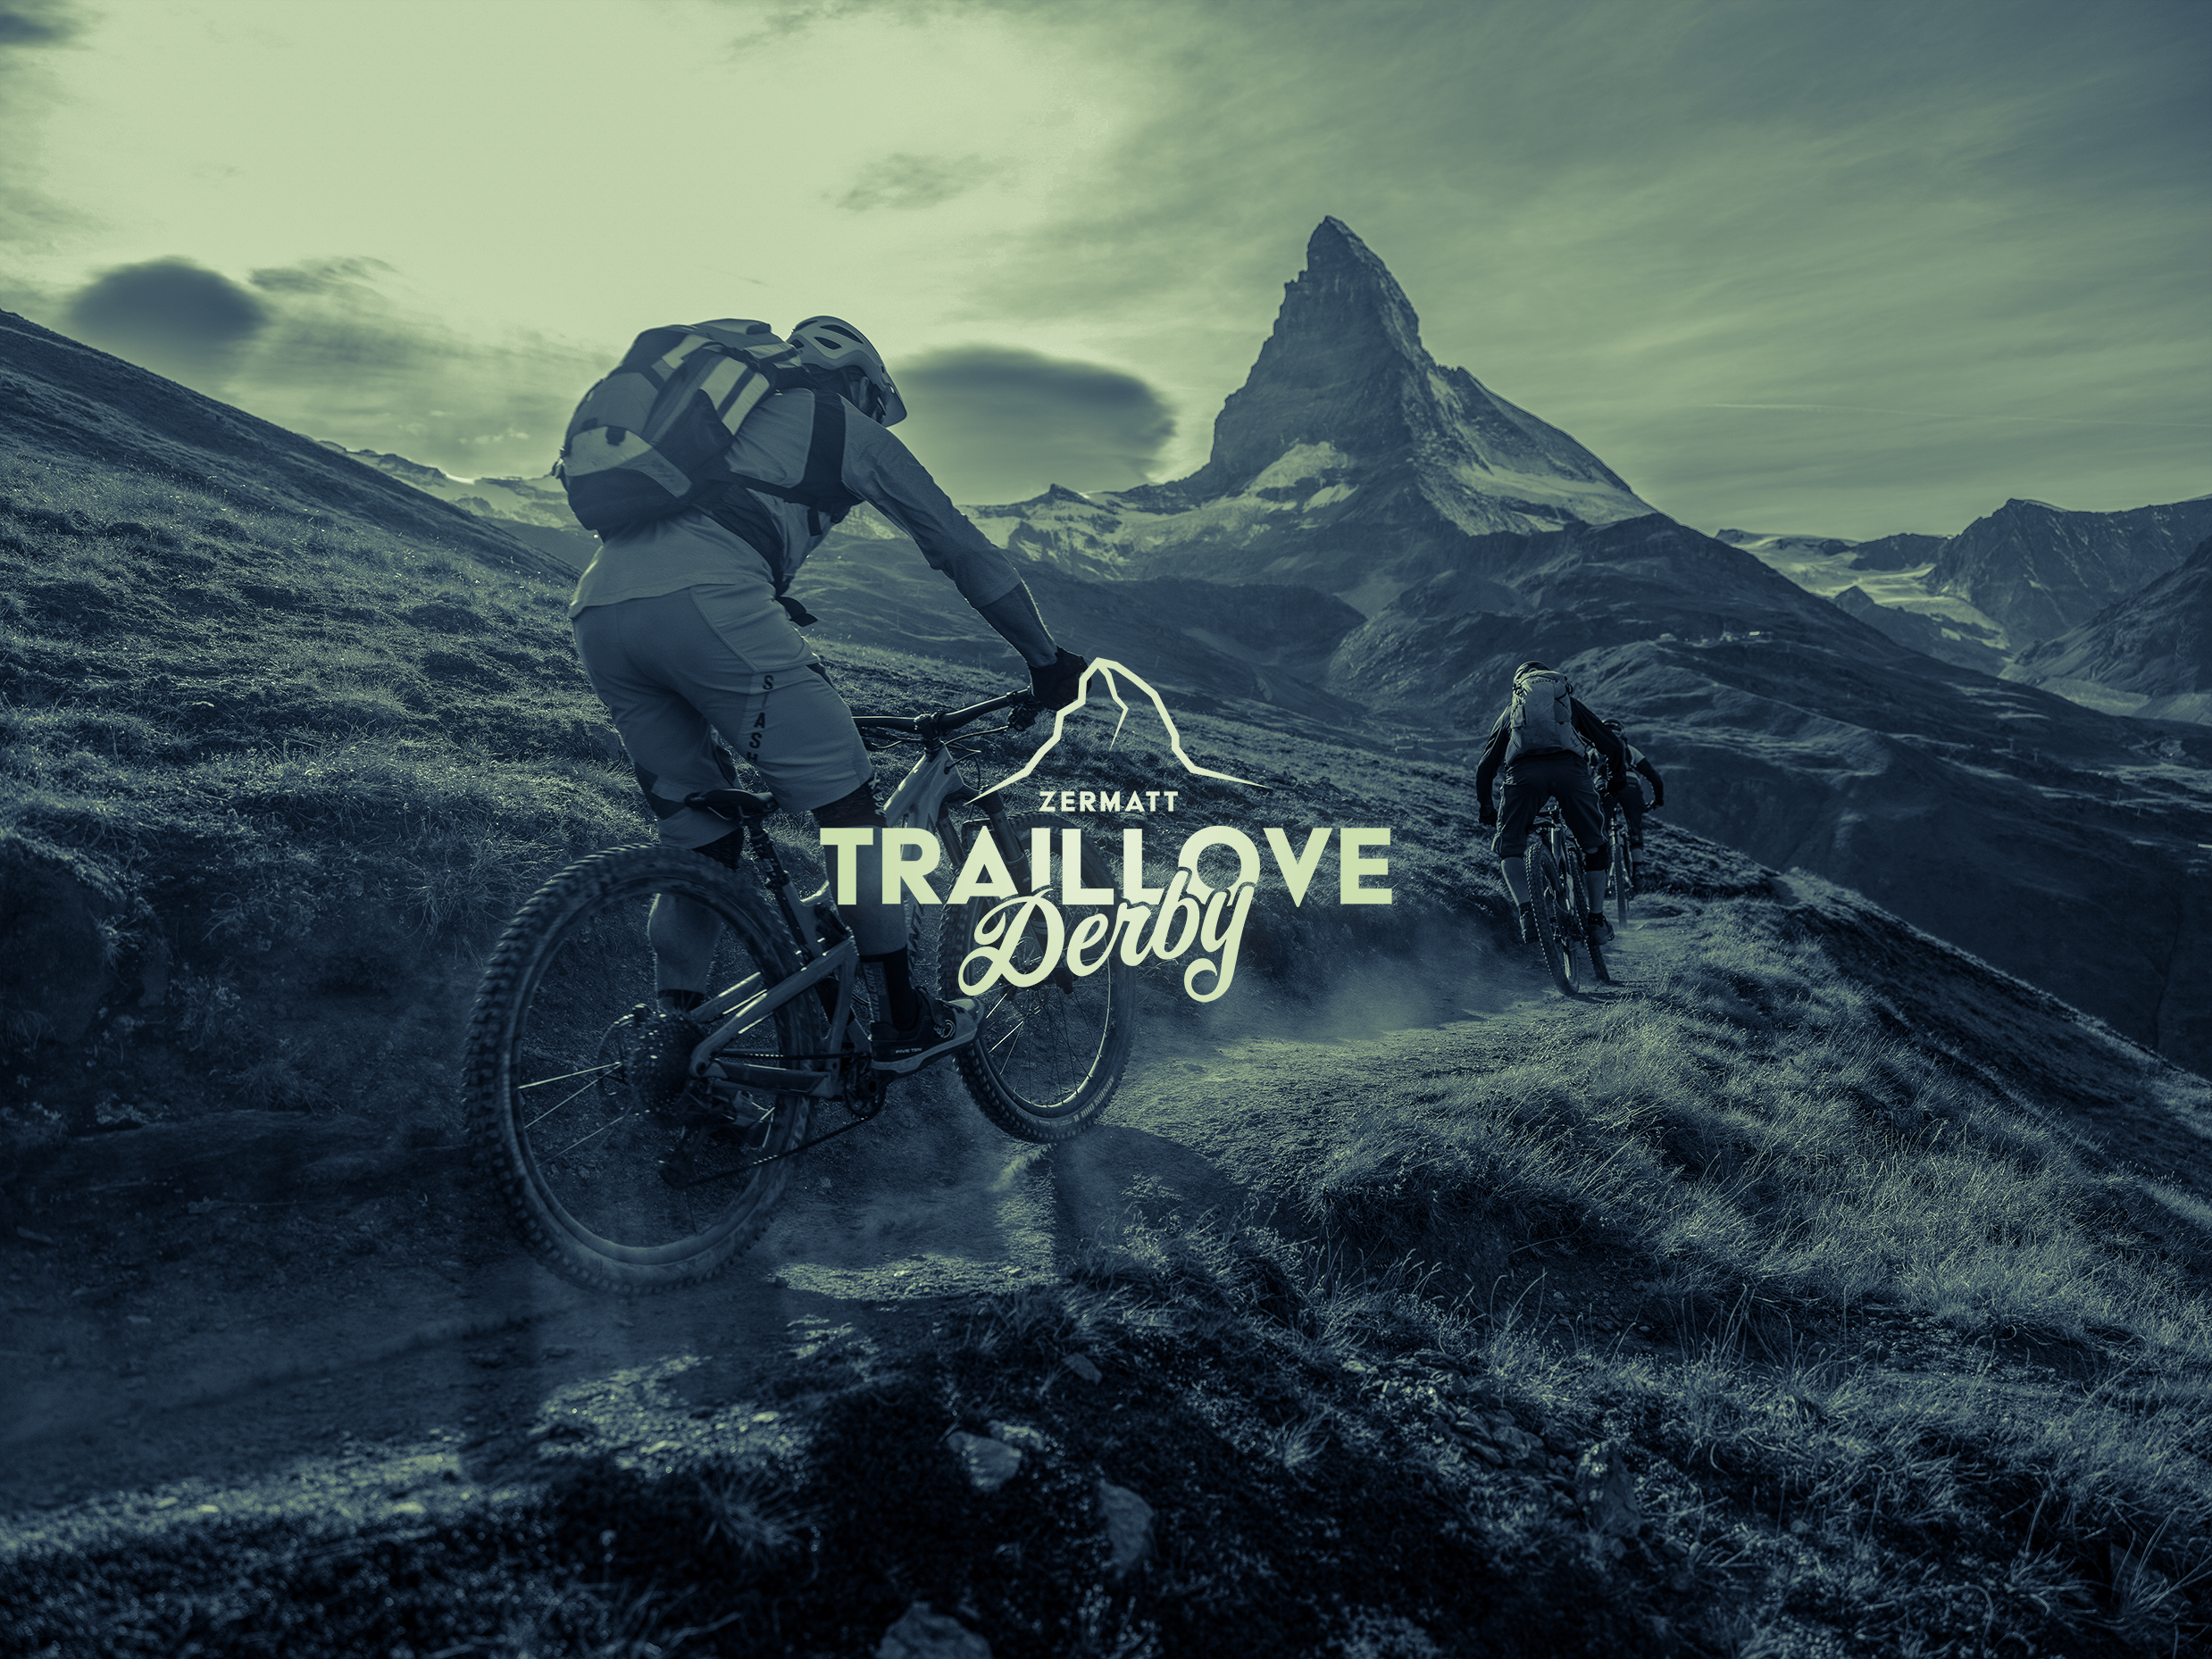 03_TRAILLOVE_Derby_Key_Visual_1_small.png